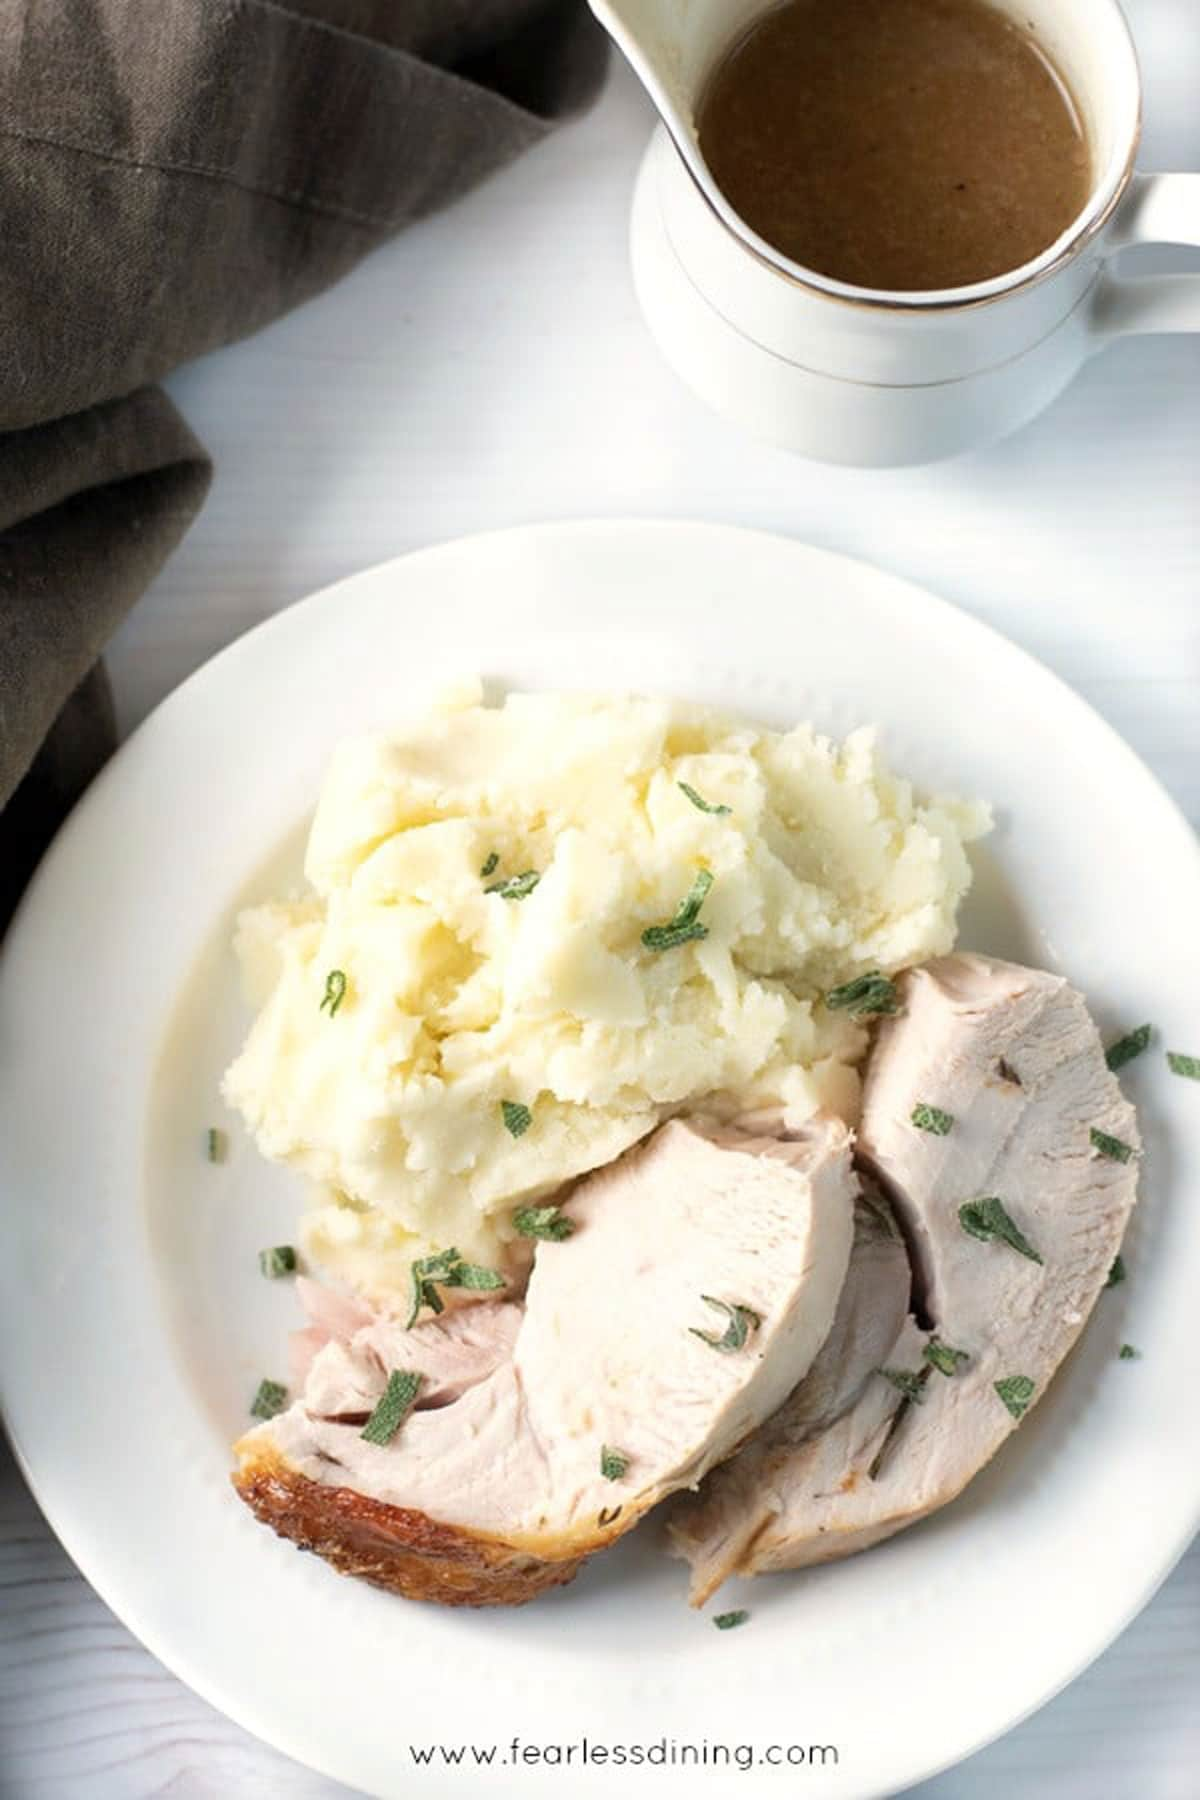 cooked sliced turkey breast next to mashed potatoes on a plate